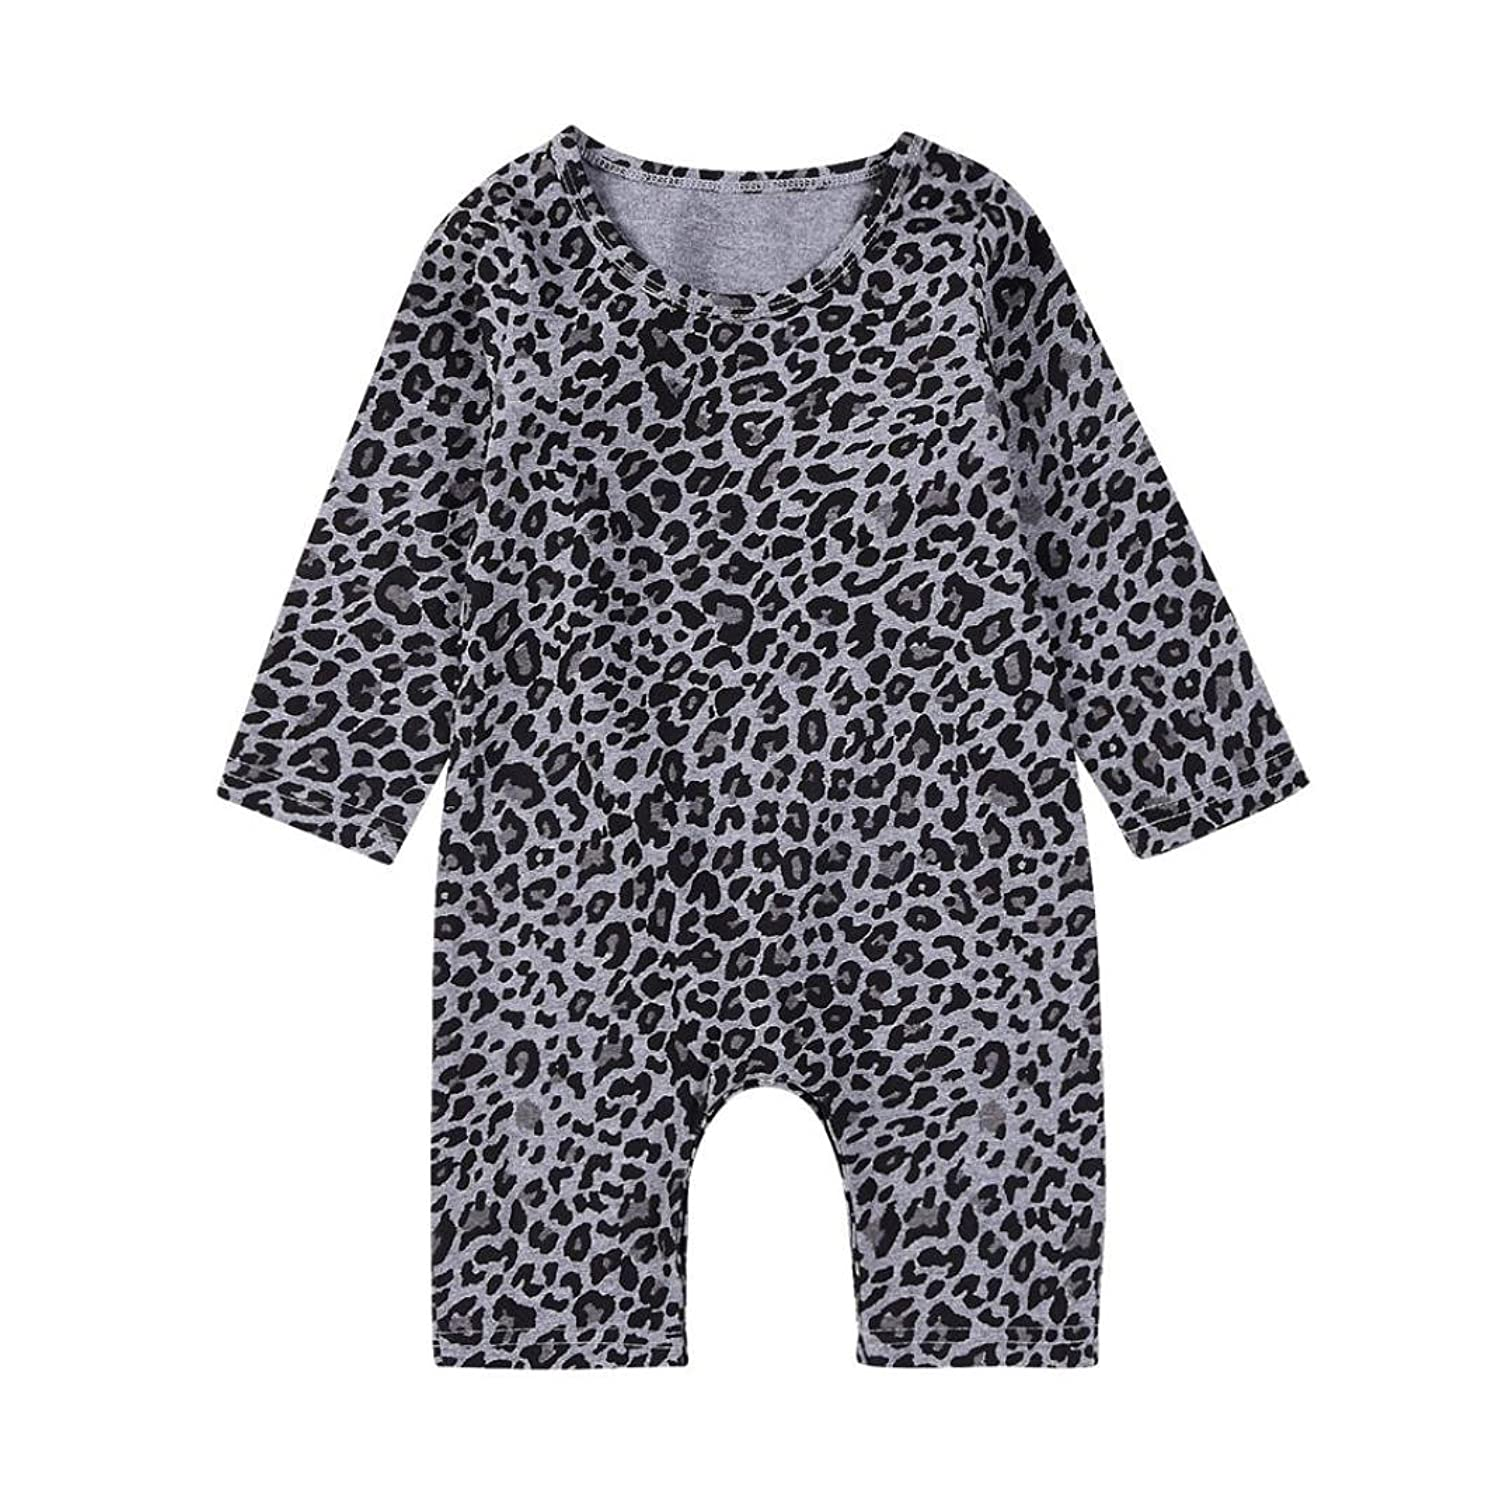 Fabal Toddler Newborn Baby Boys Girls Leopard Print Rompers Jumpsuit Outfits Clothes